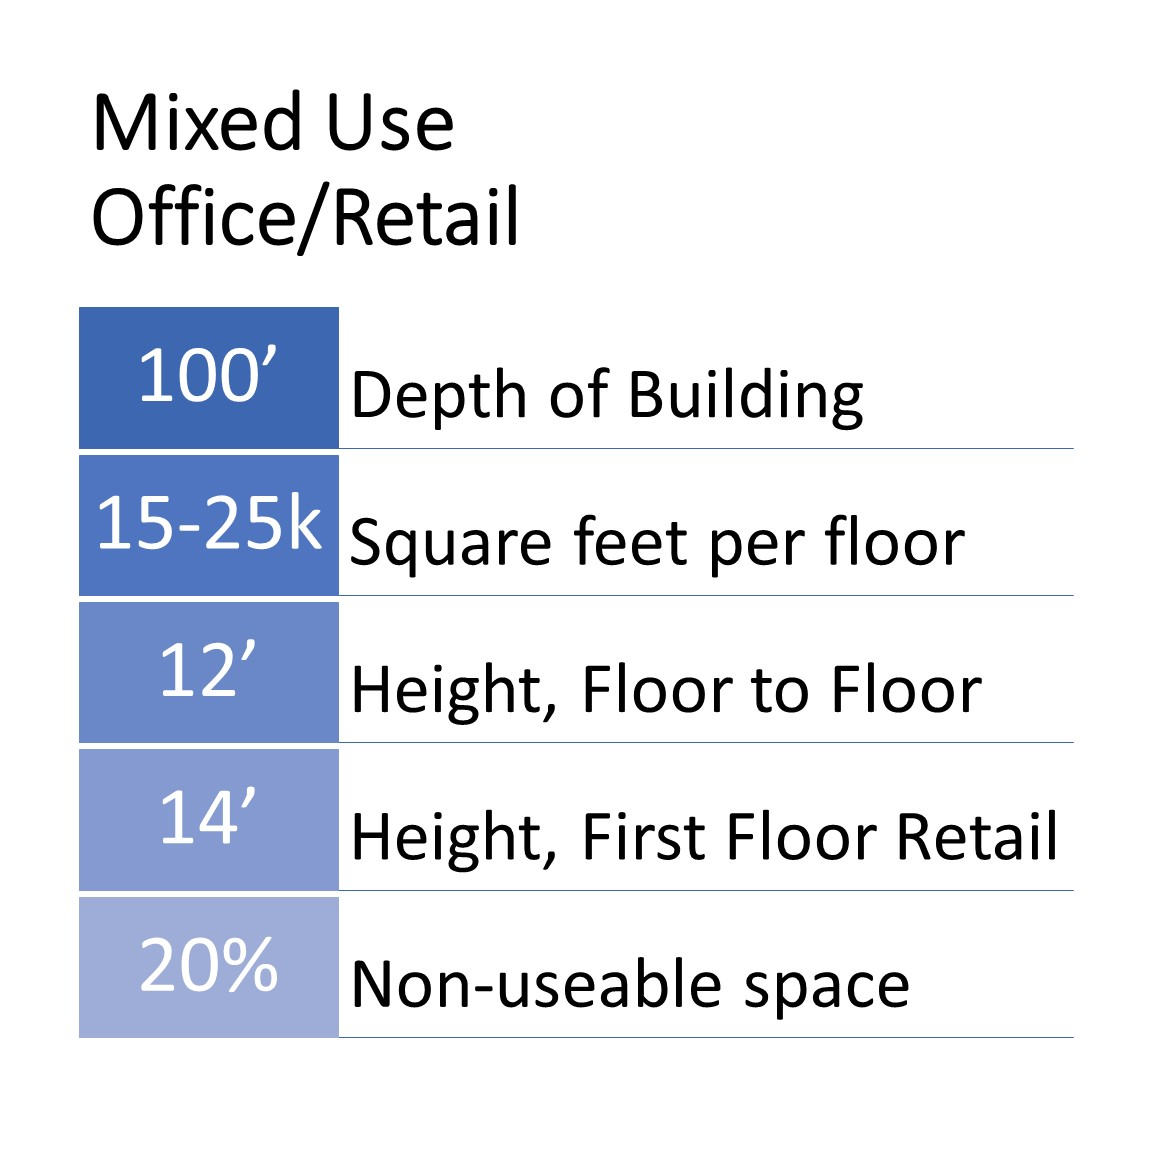 Dimensions Based On Typical Building Corridor Layouts And Ideal Size For Standard  Office. Height Between Floors May Vary Based On Design, MEP, Etc.